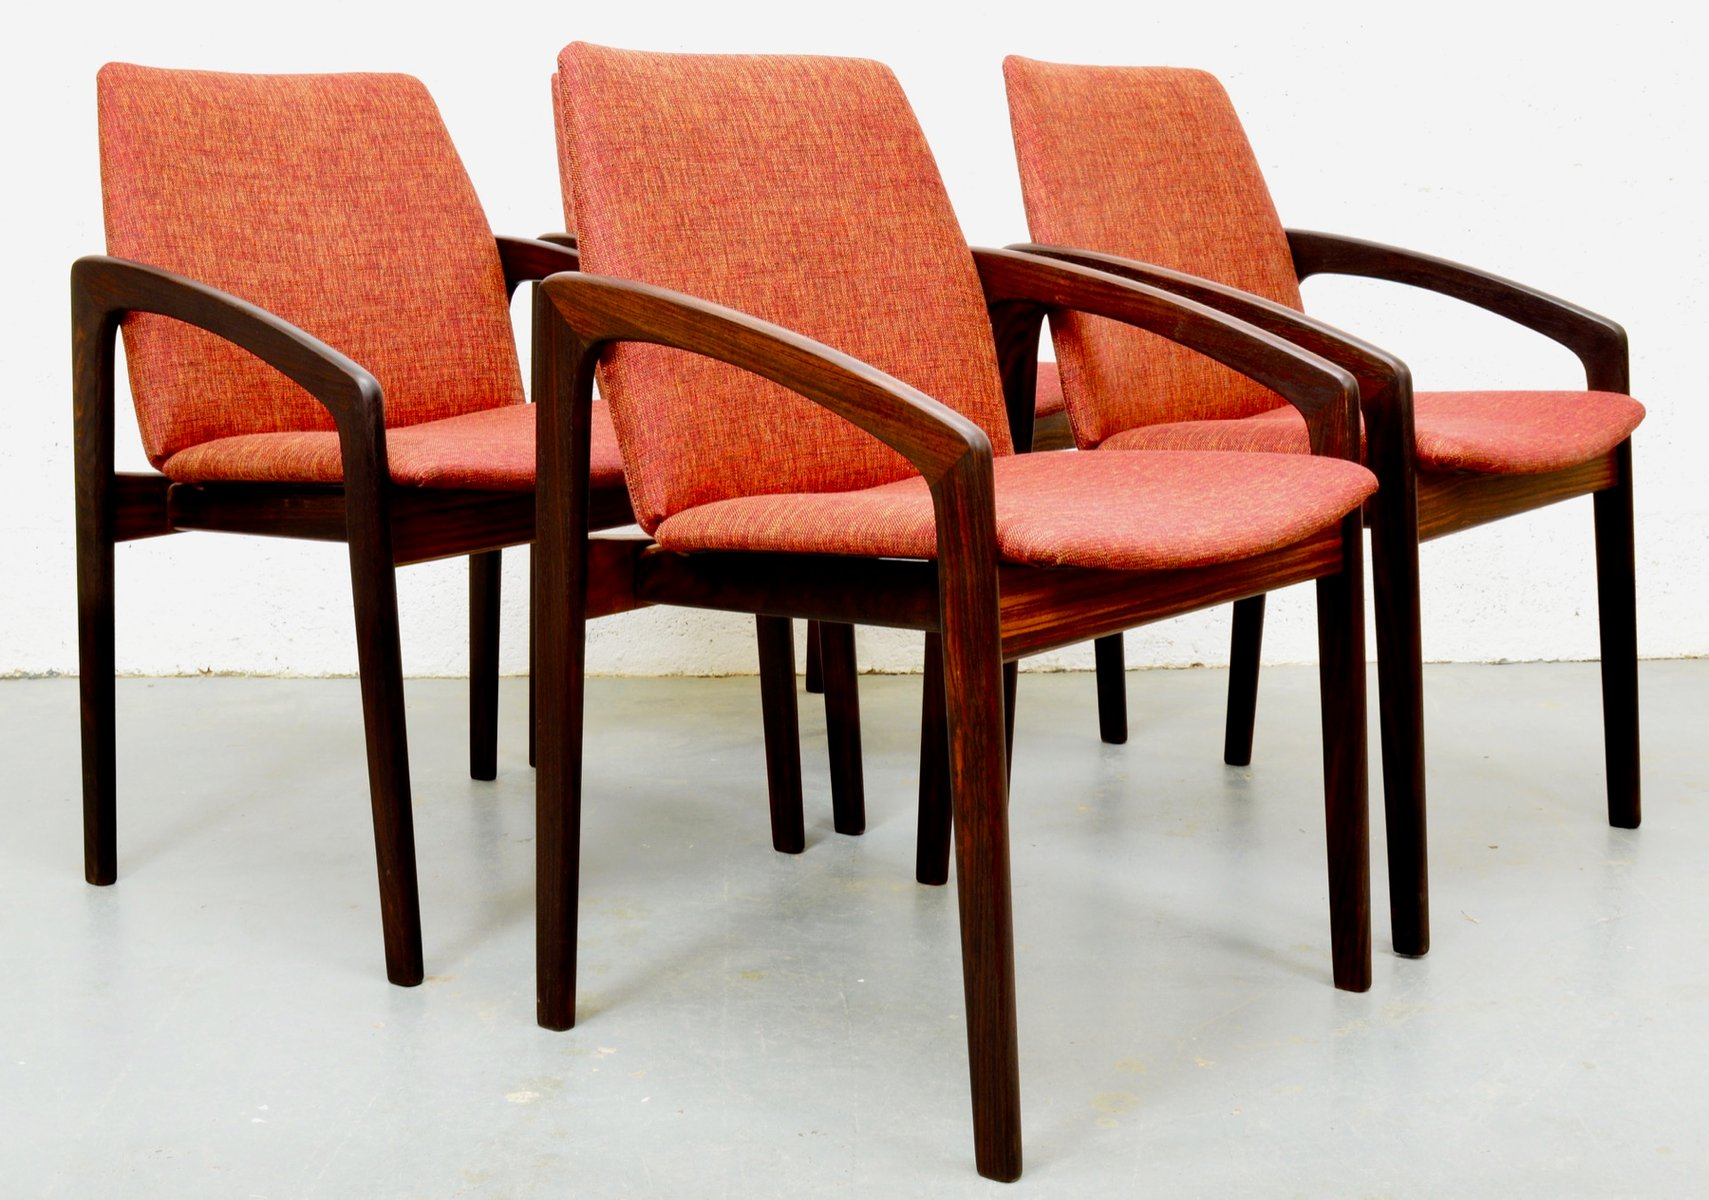 Mid century rosewood danish chairs by kai kristiansen for korup set of 4 for sale at pamono - Kai kristiansen chairs ...